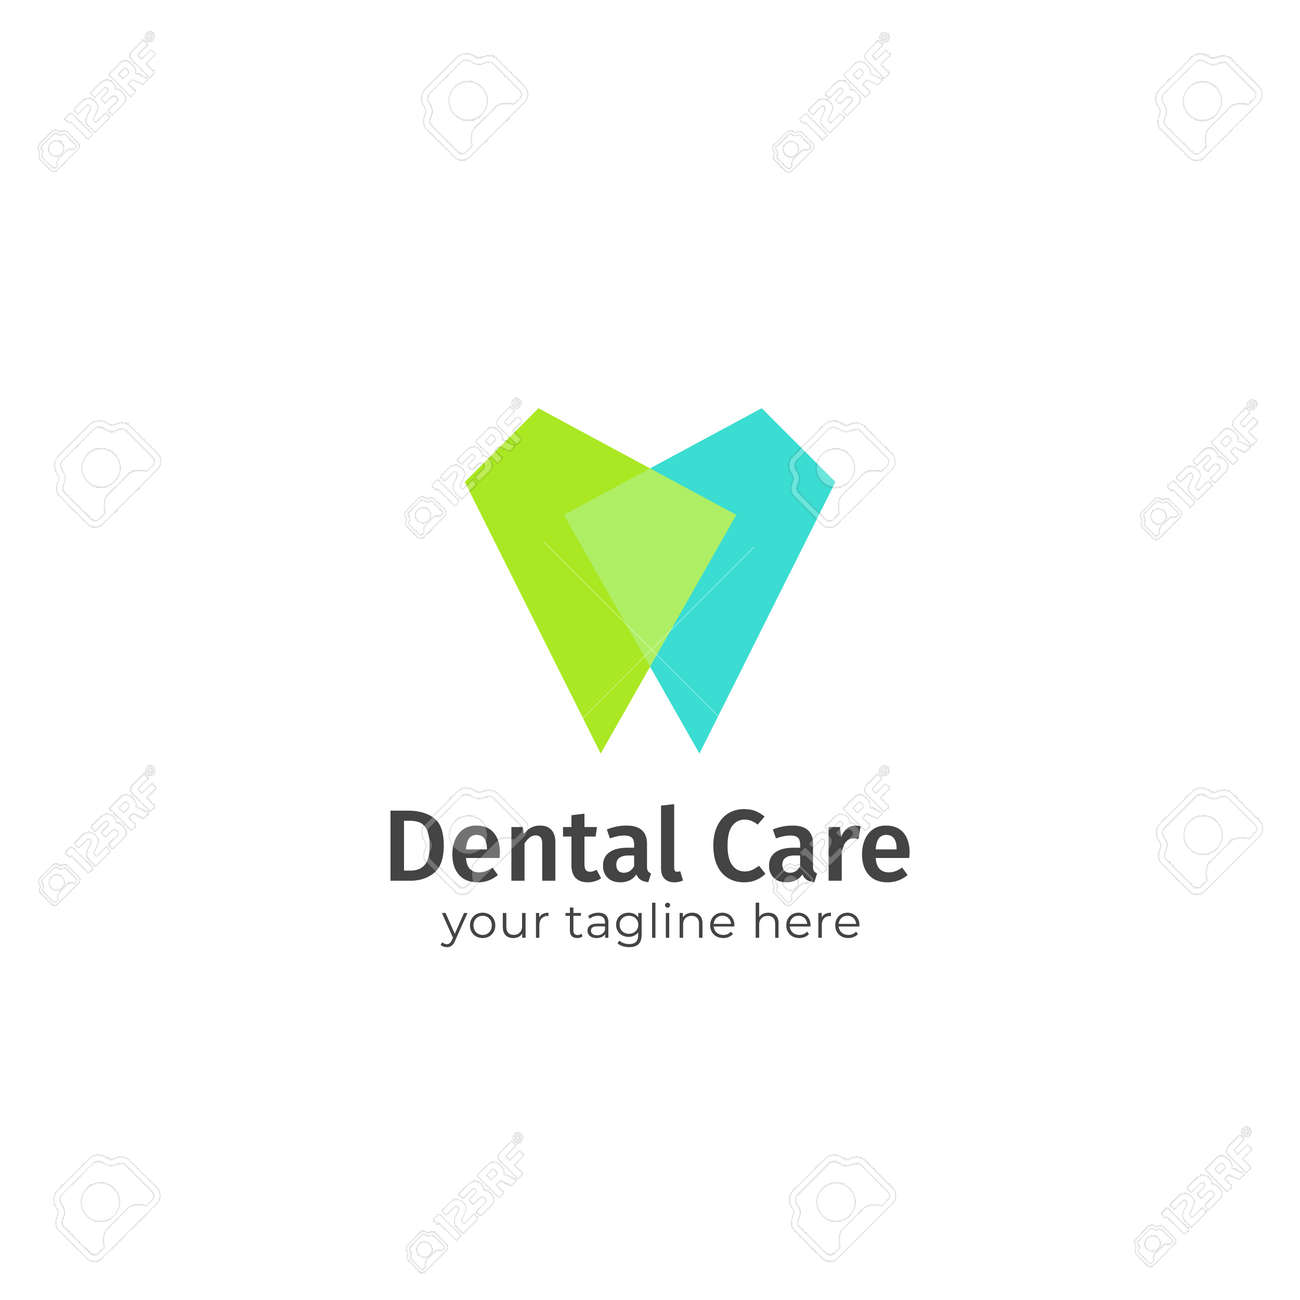 Dental Care Dentistry Teeth Logo Blue And Green Color Overlap Royalty Free Cliparts Vectors And Stock Illustration Image 136958638